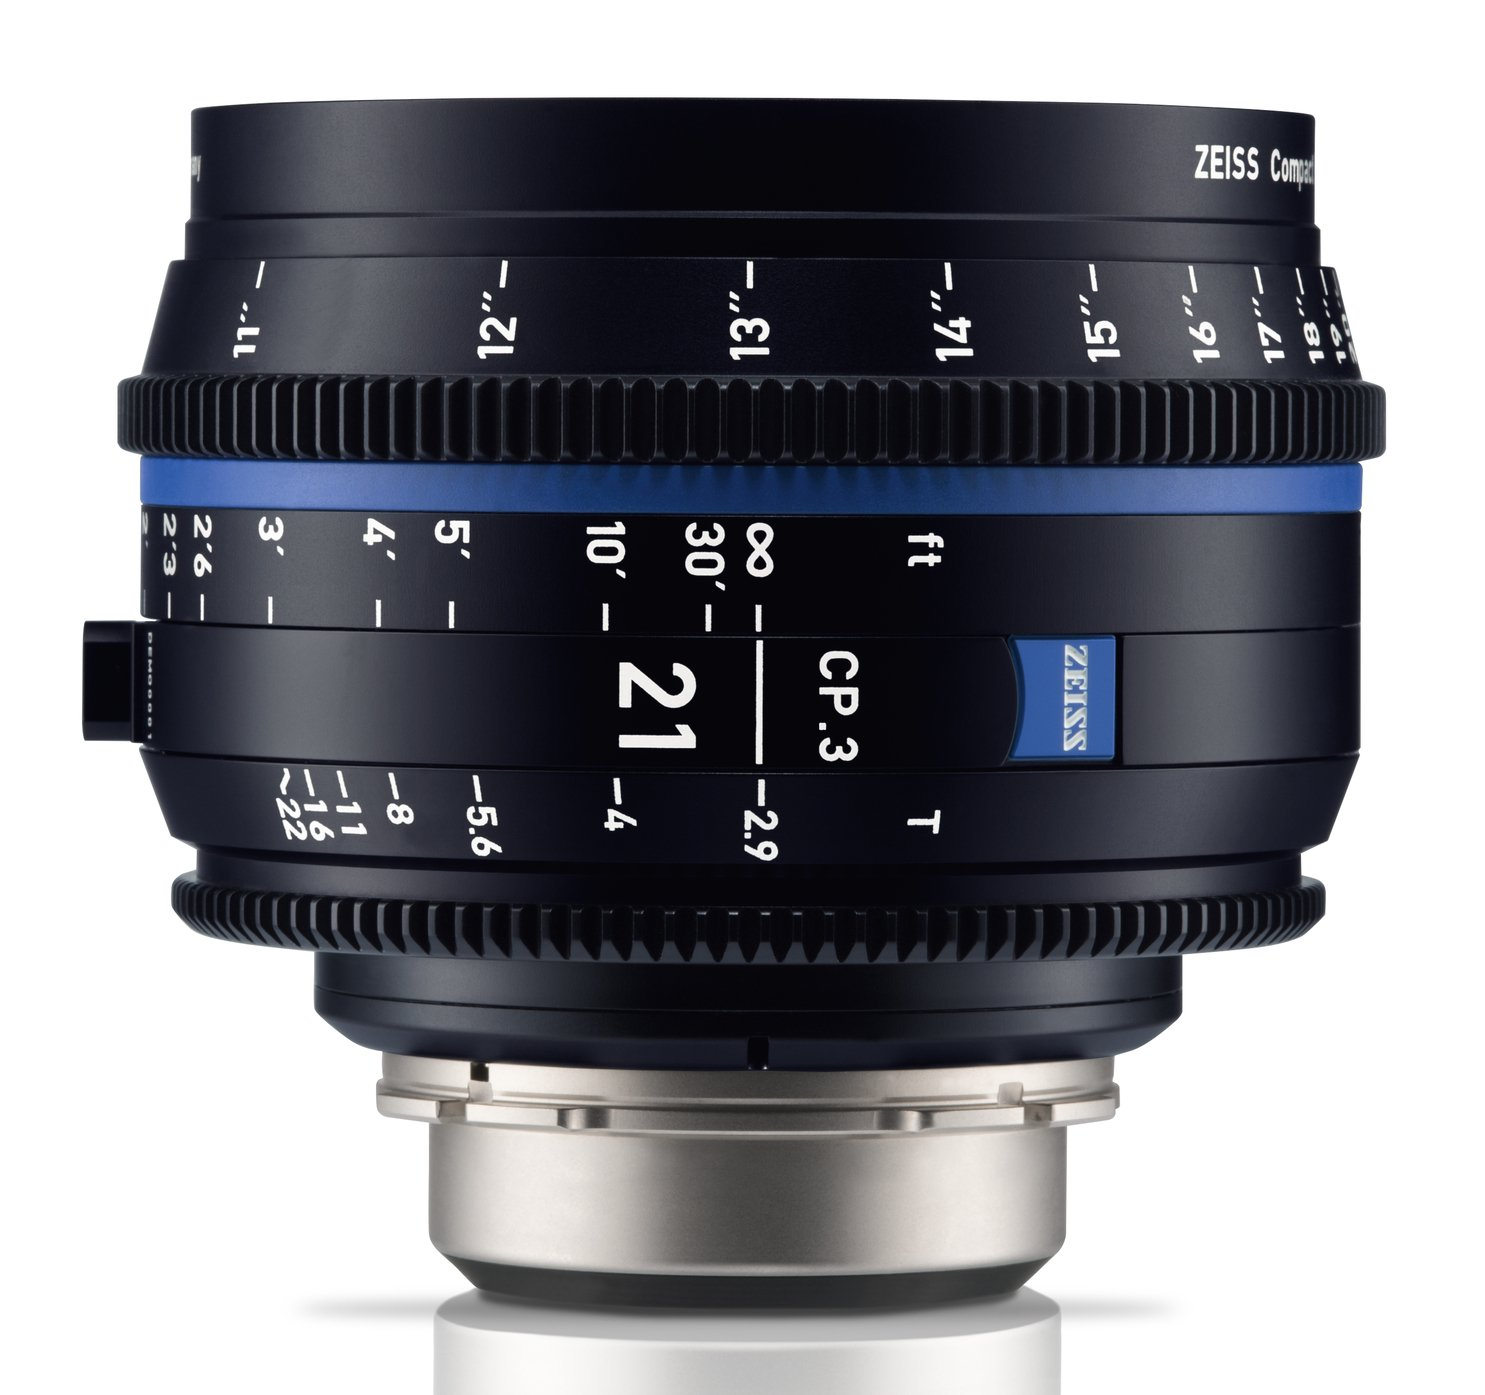 ZEISS CP.3 21 mm T2,9 Distagon T* F-mount